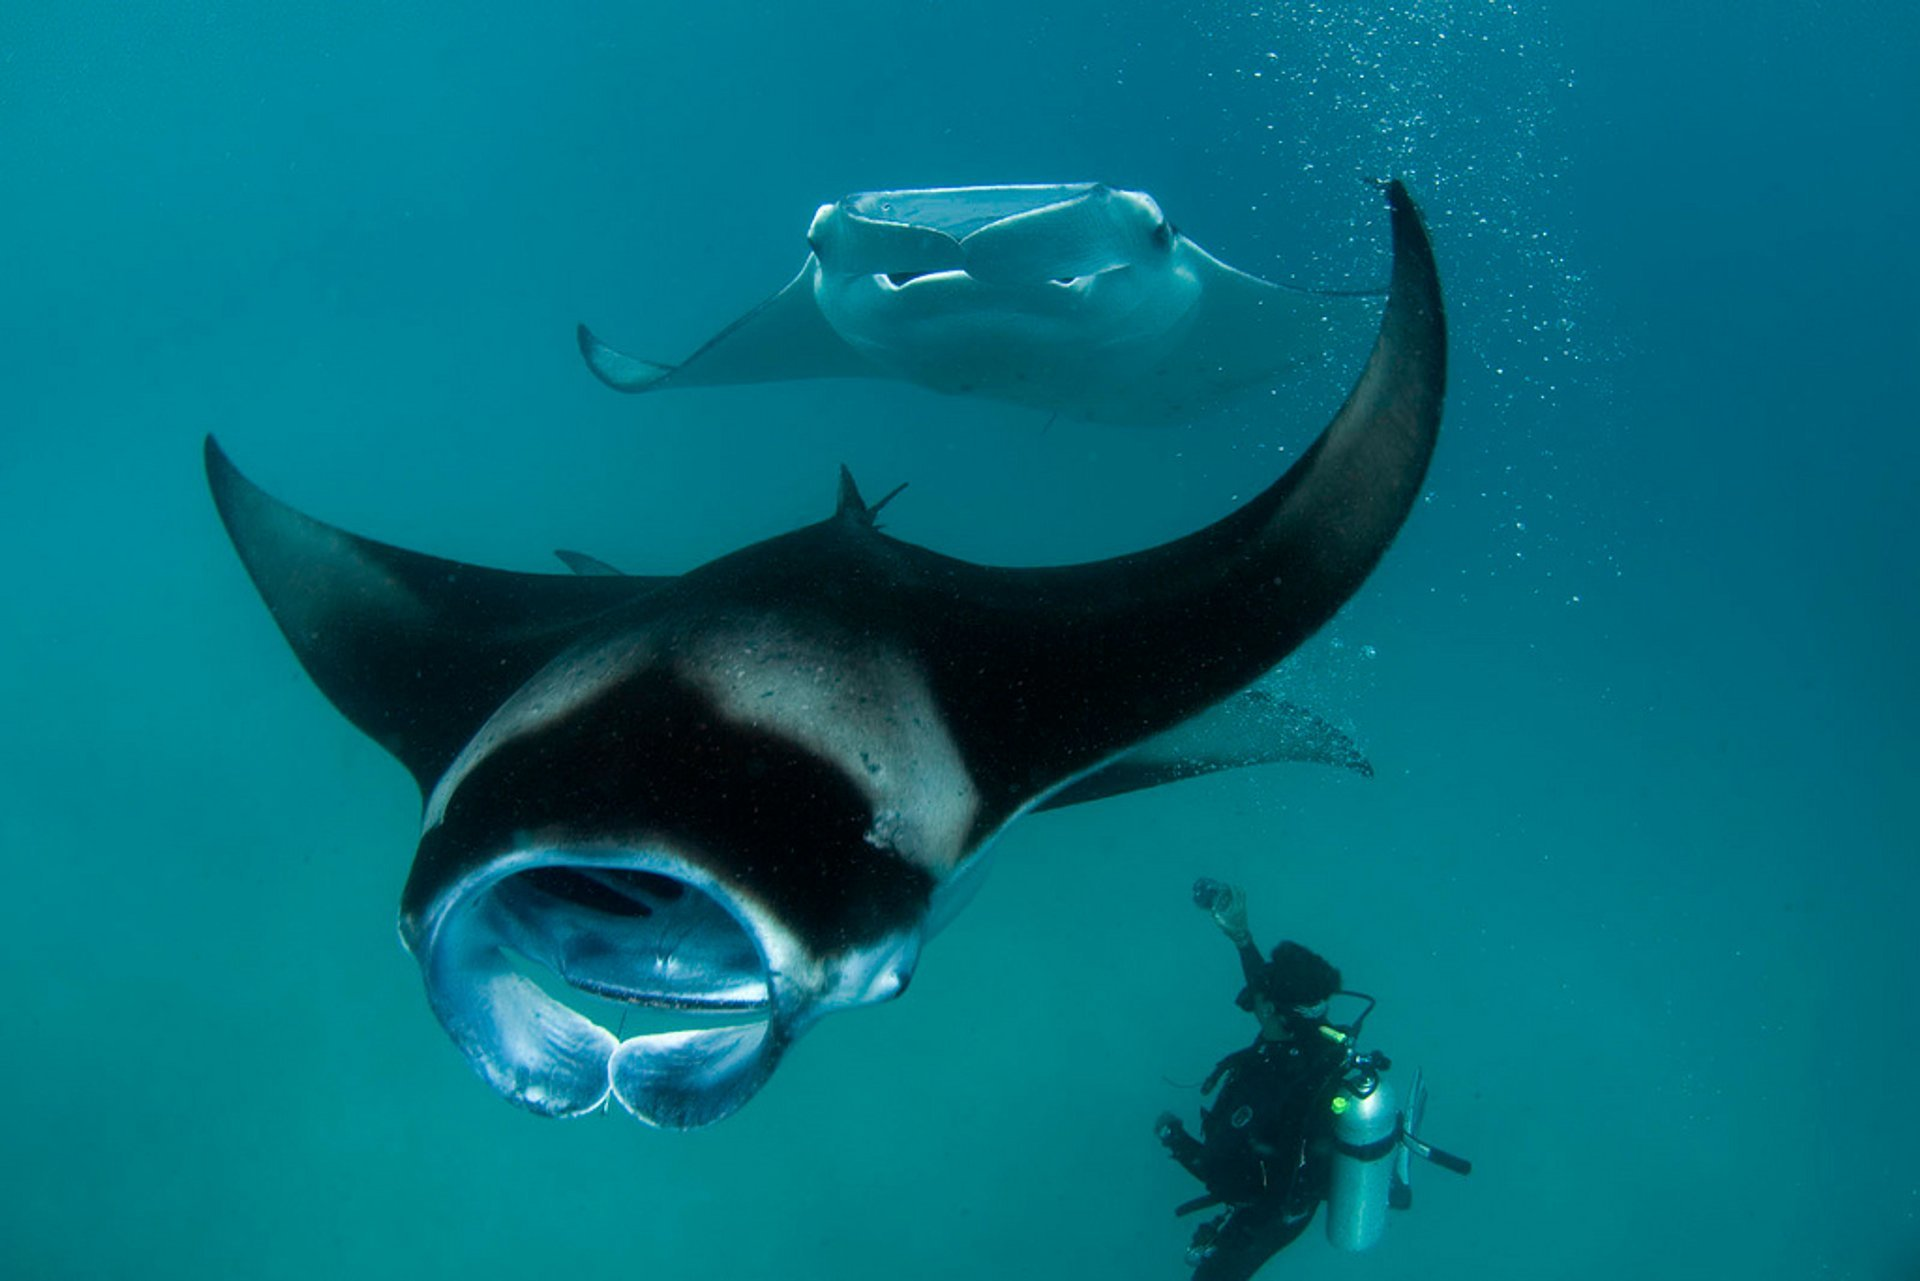 Two mantas in Hanifrau Bay 2020